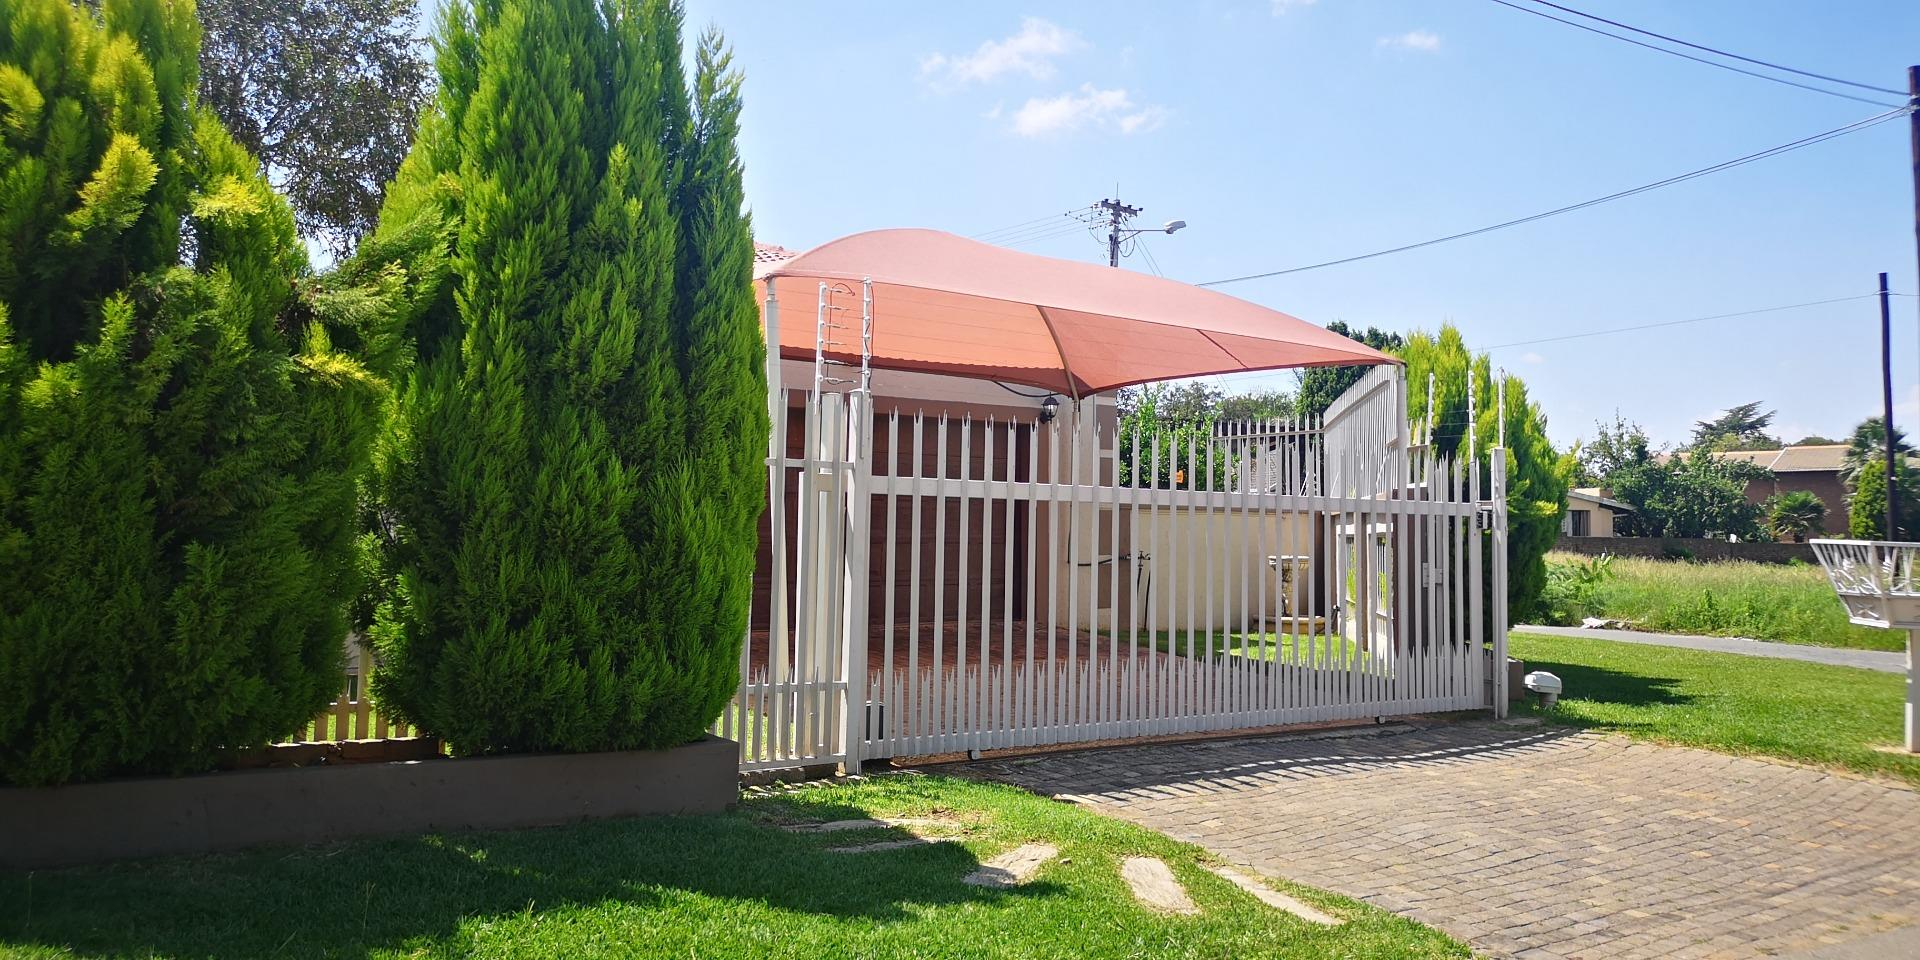 3 Bedroom House for Sale in Greenhills, Randfontein - Gauteng